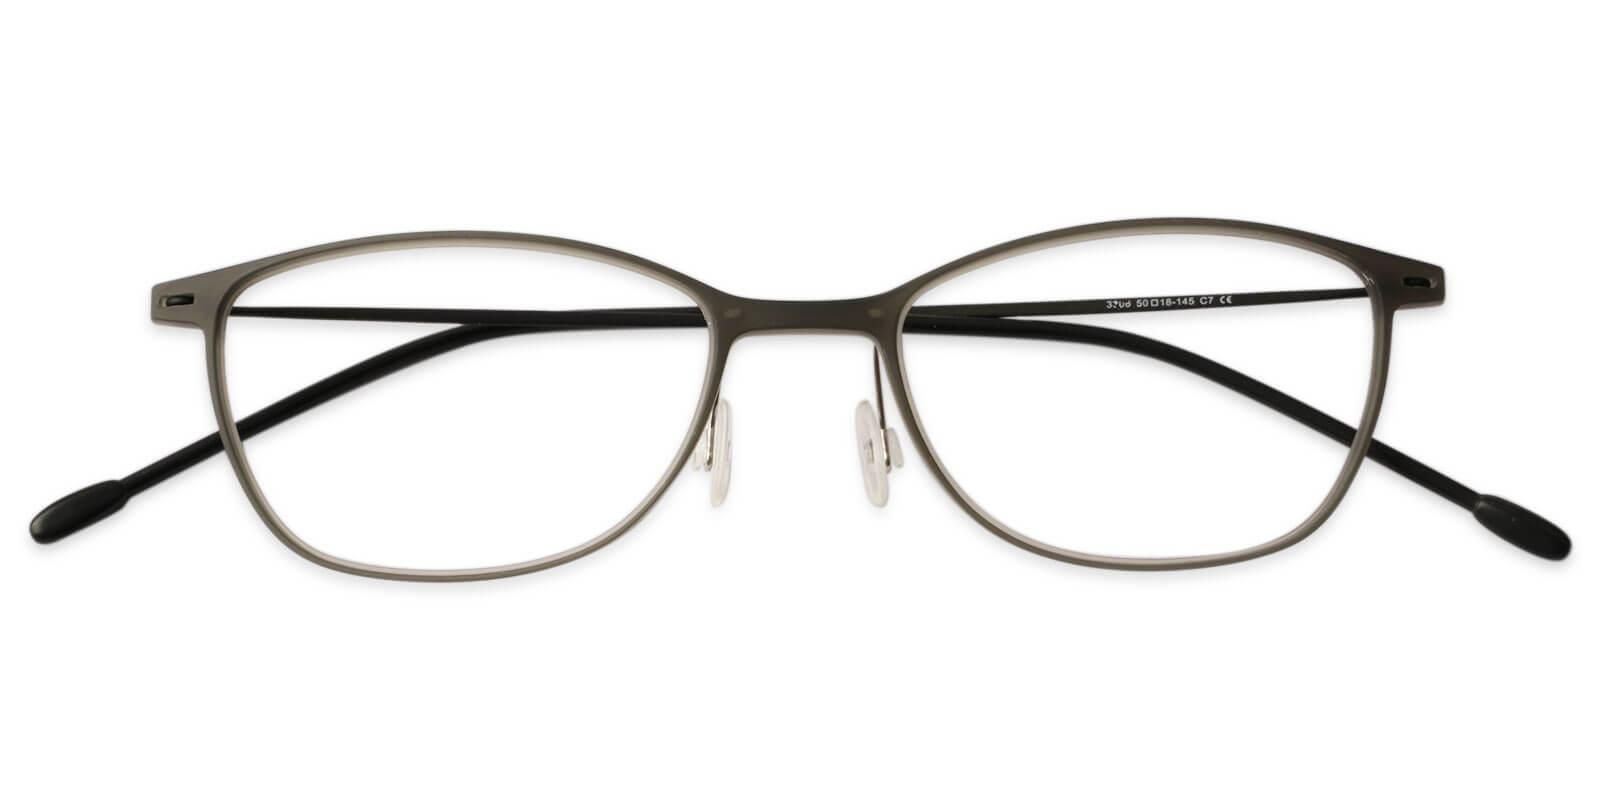 Nigeria Gray Combination Eyeglasses , Lightweight , NosePads Frames from ABBE Glasses